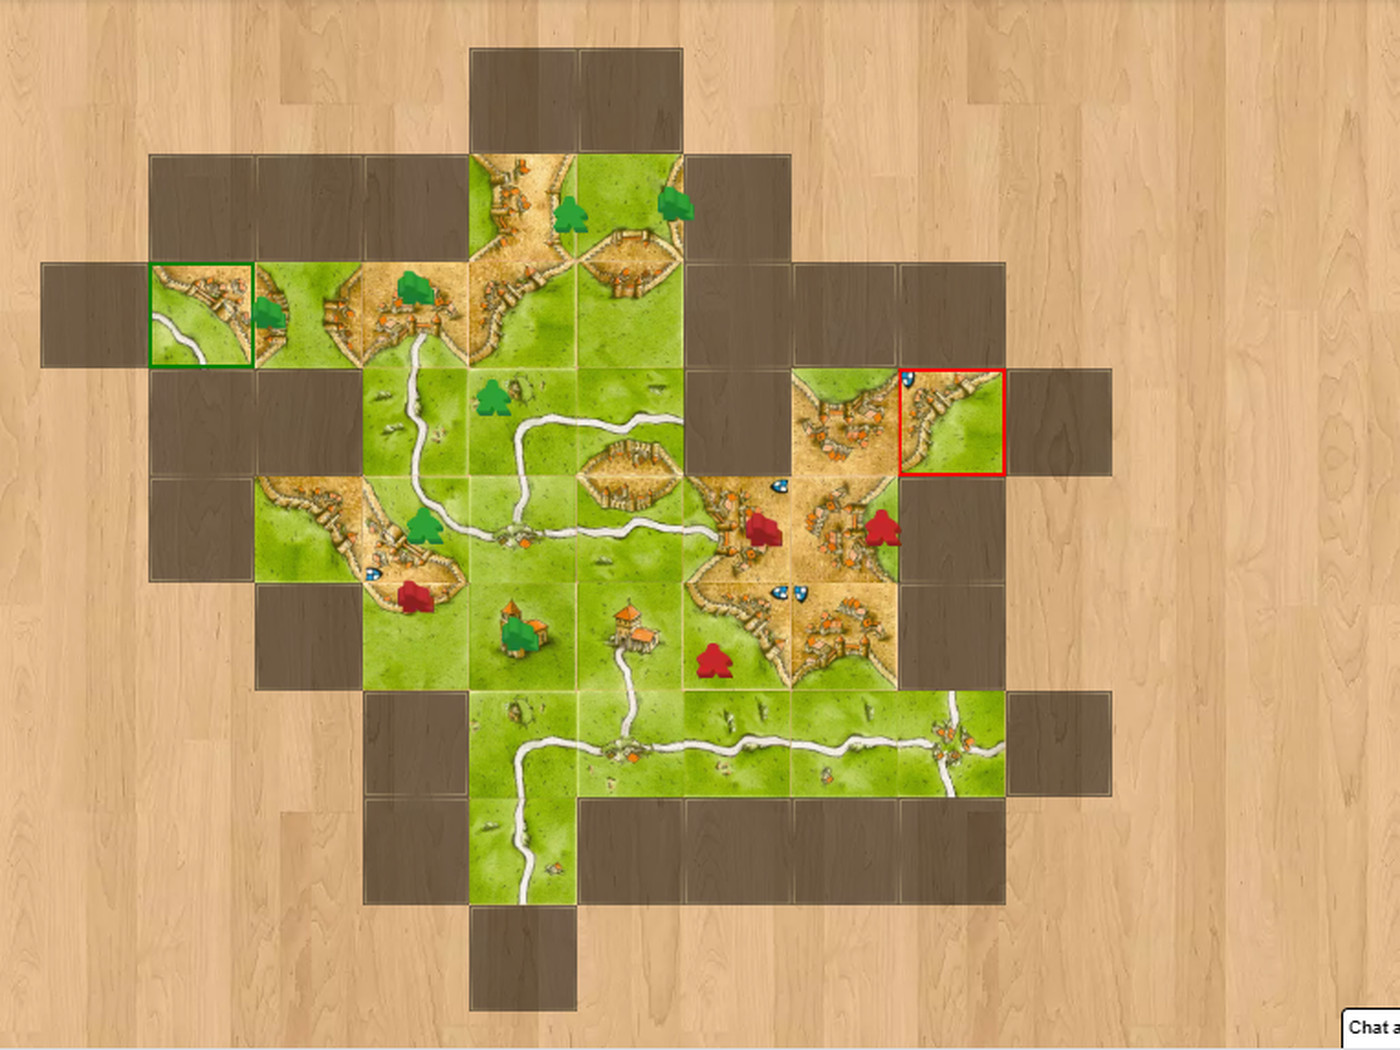 Board Game Arena The Best Way To Play Board Games With Friends Online Vox